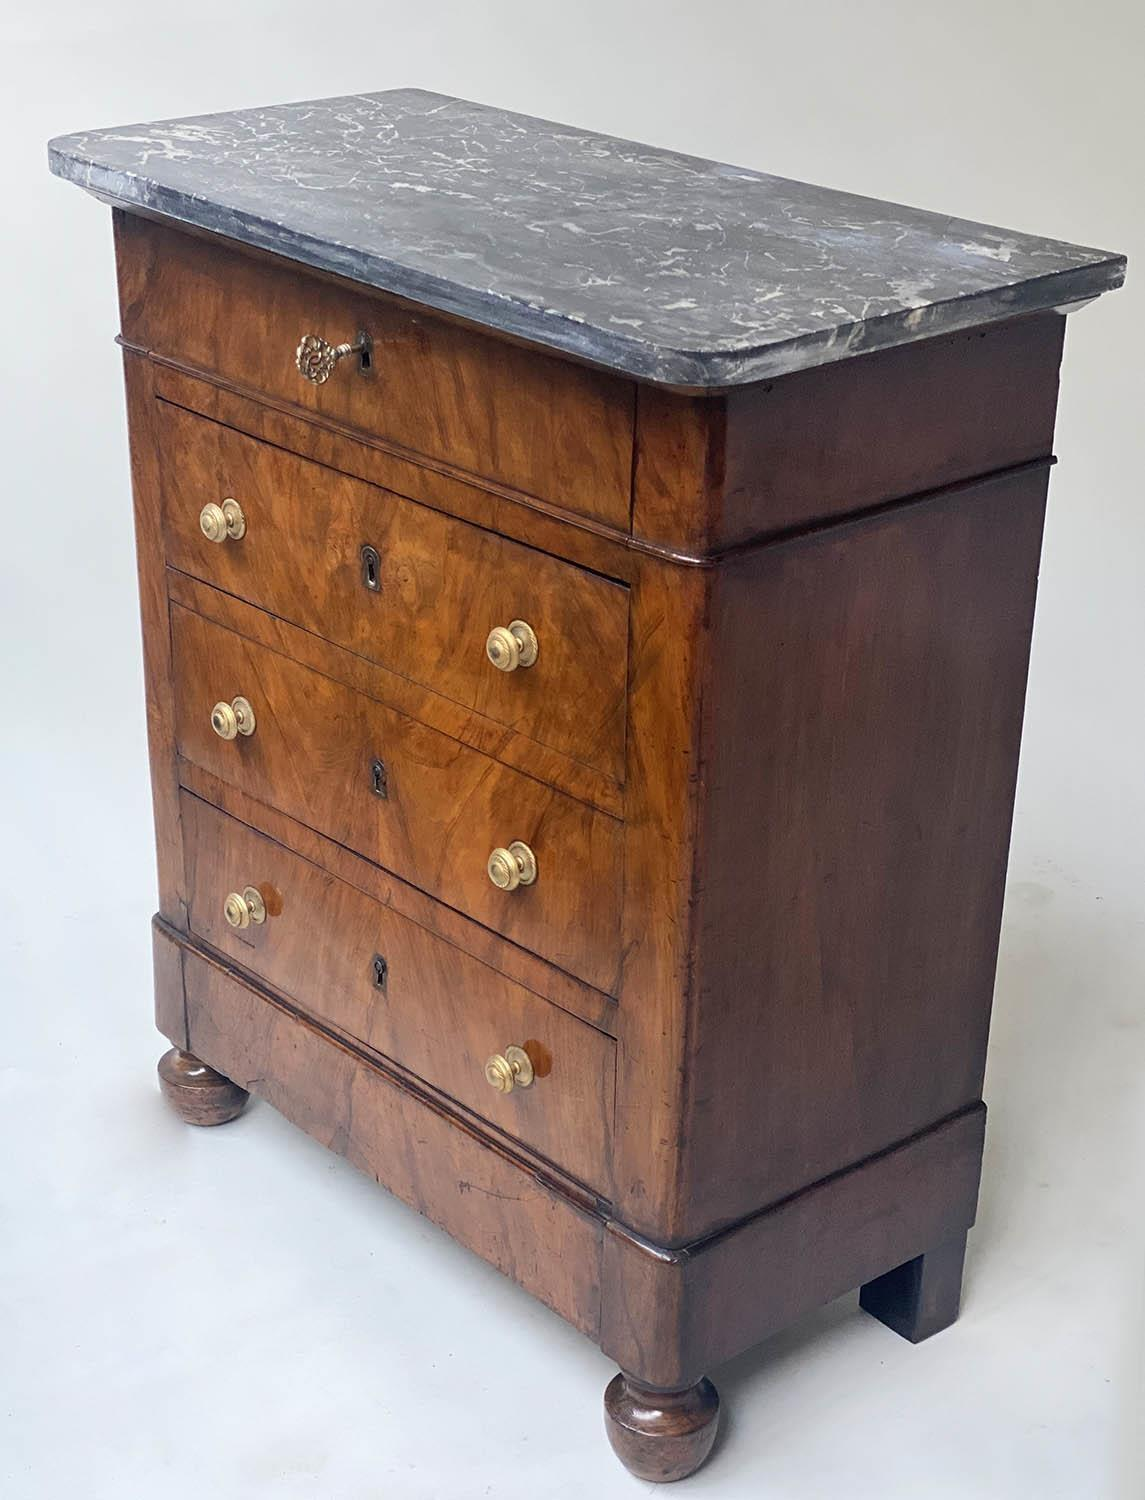 HALL COMMODE, 19th century French Louis Philippe walnut and gilt metal mounted of shallow - Image 2 of 4